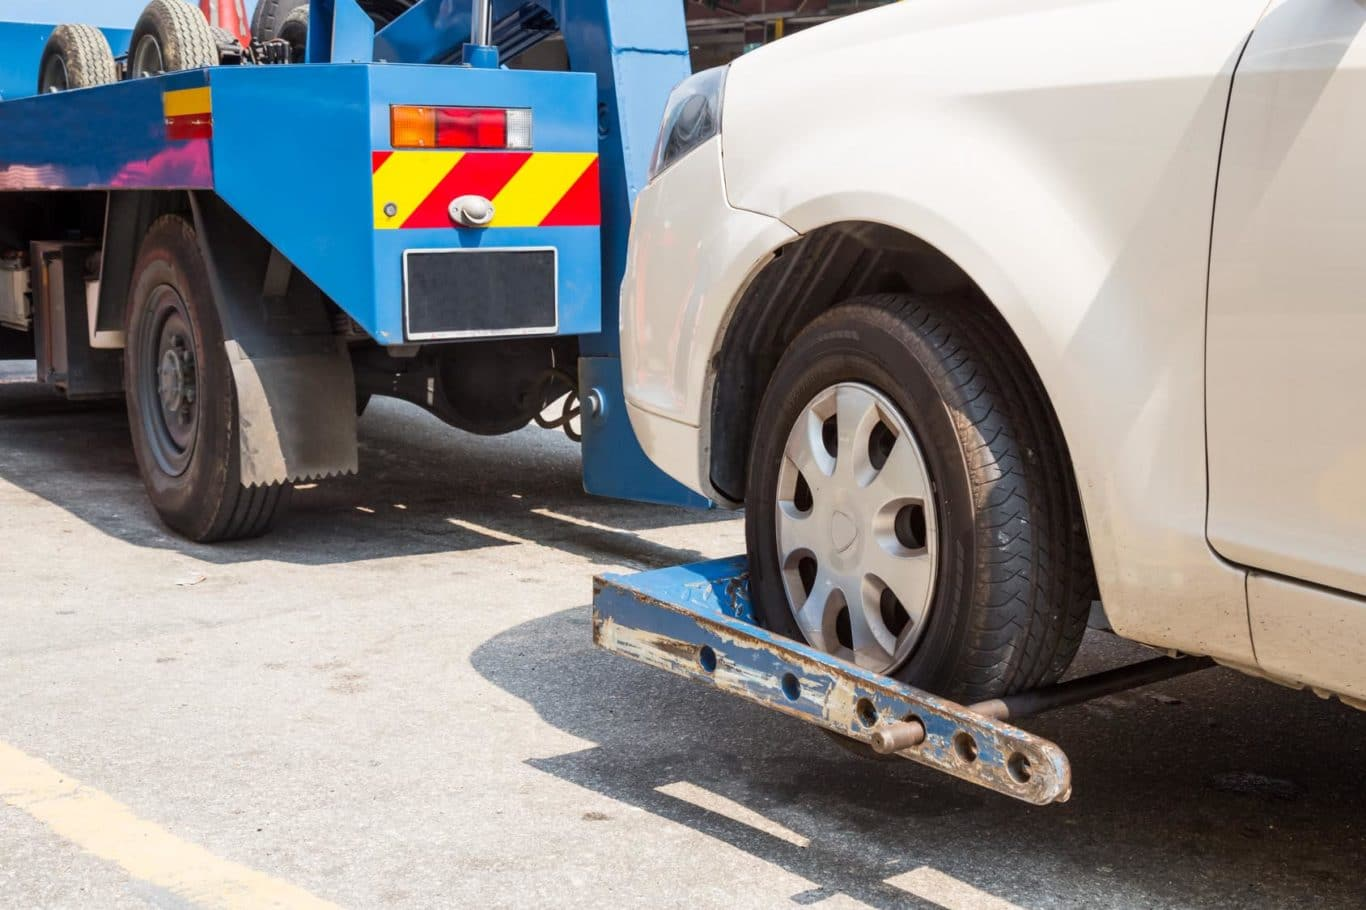 Dublin 8 (D8) expert Car Towing services